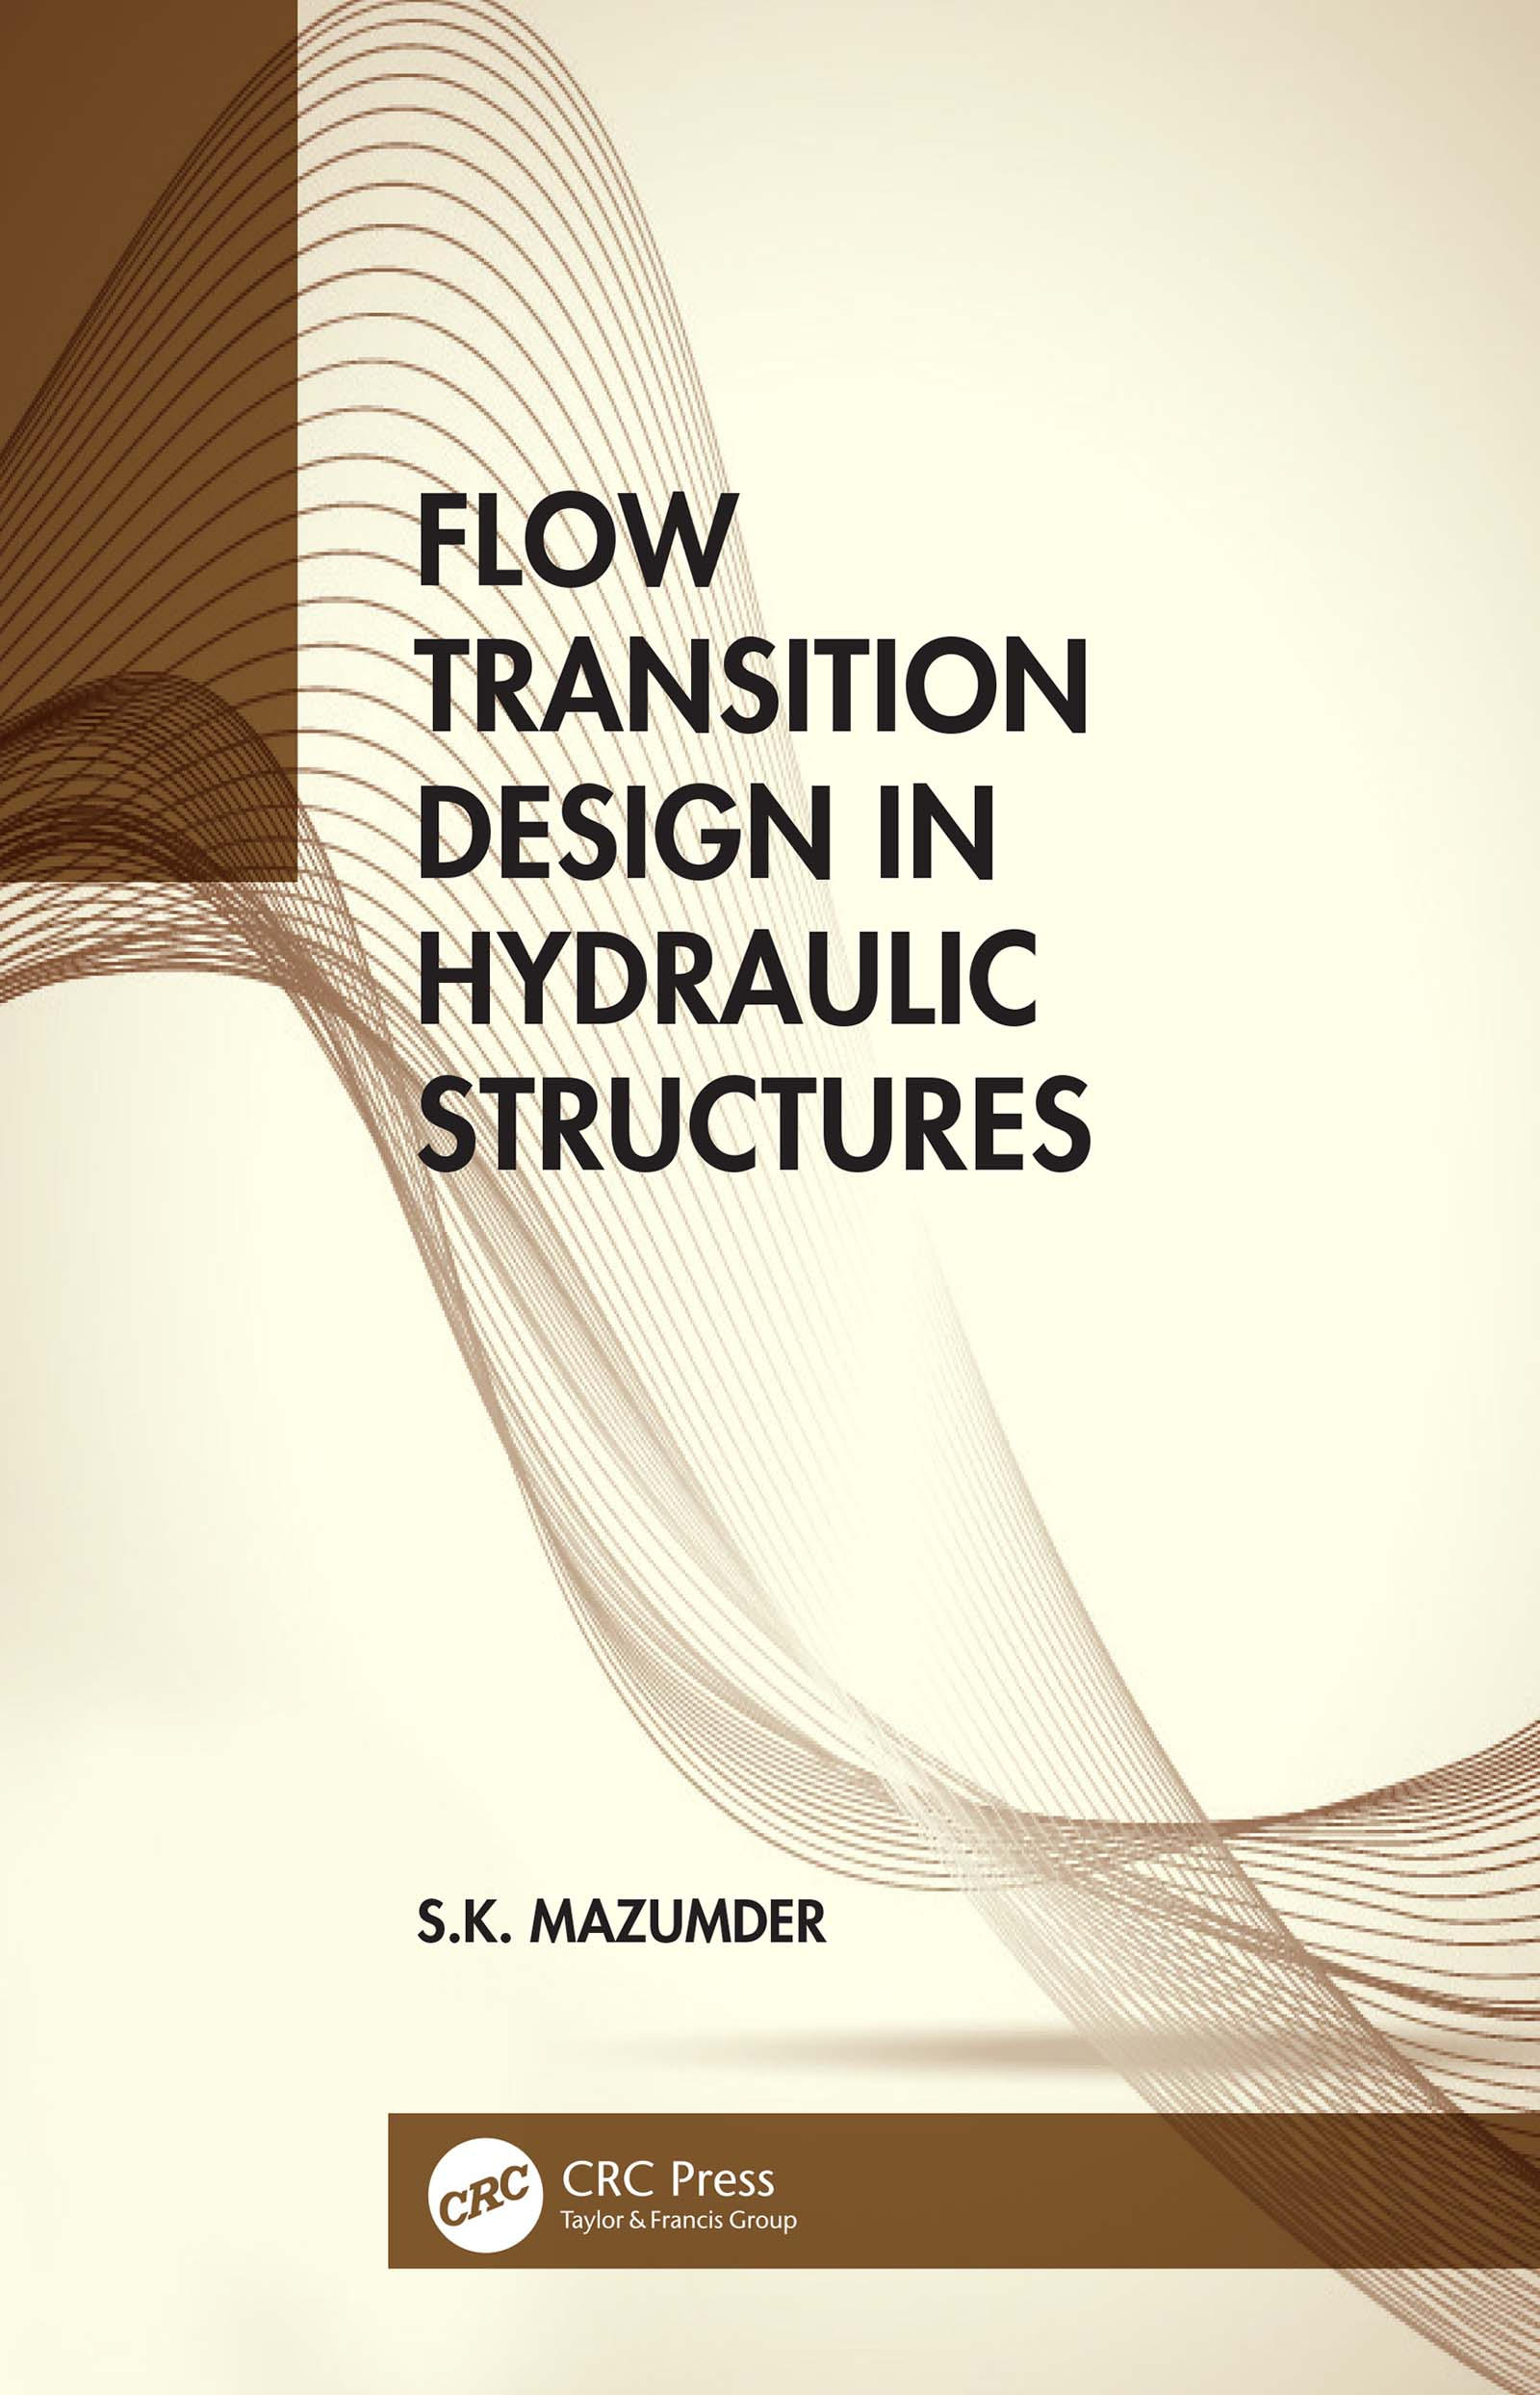 Illustrative Designs of Flow Transitions in Hydraulic Structures